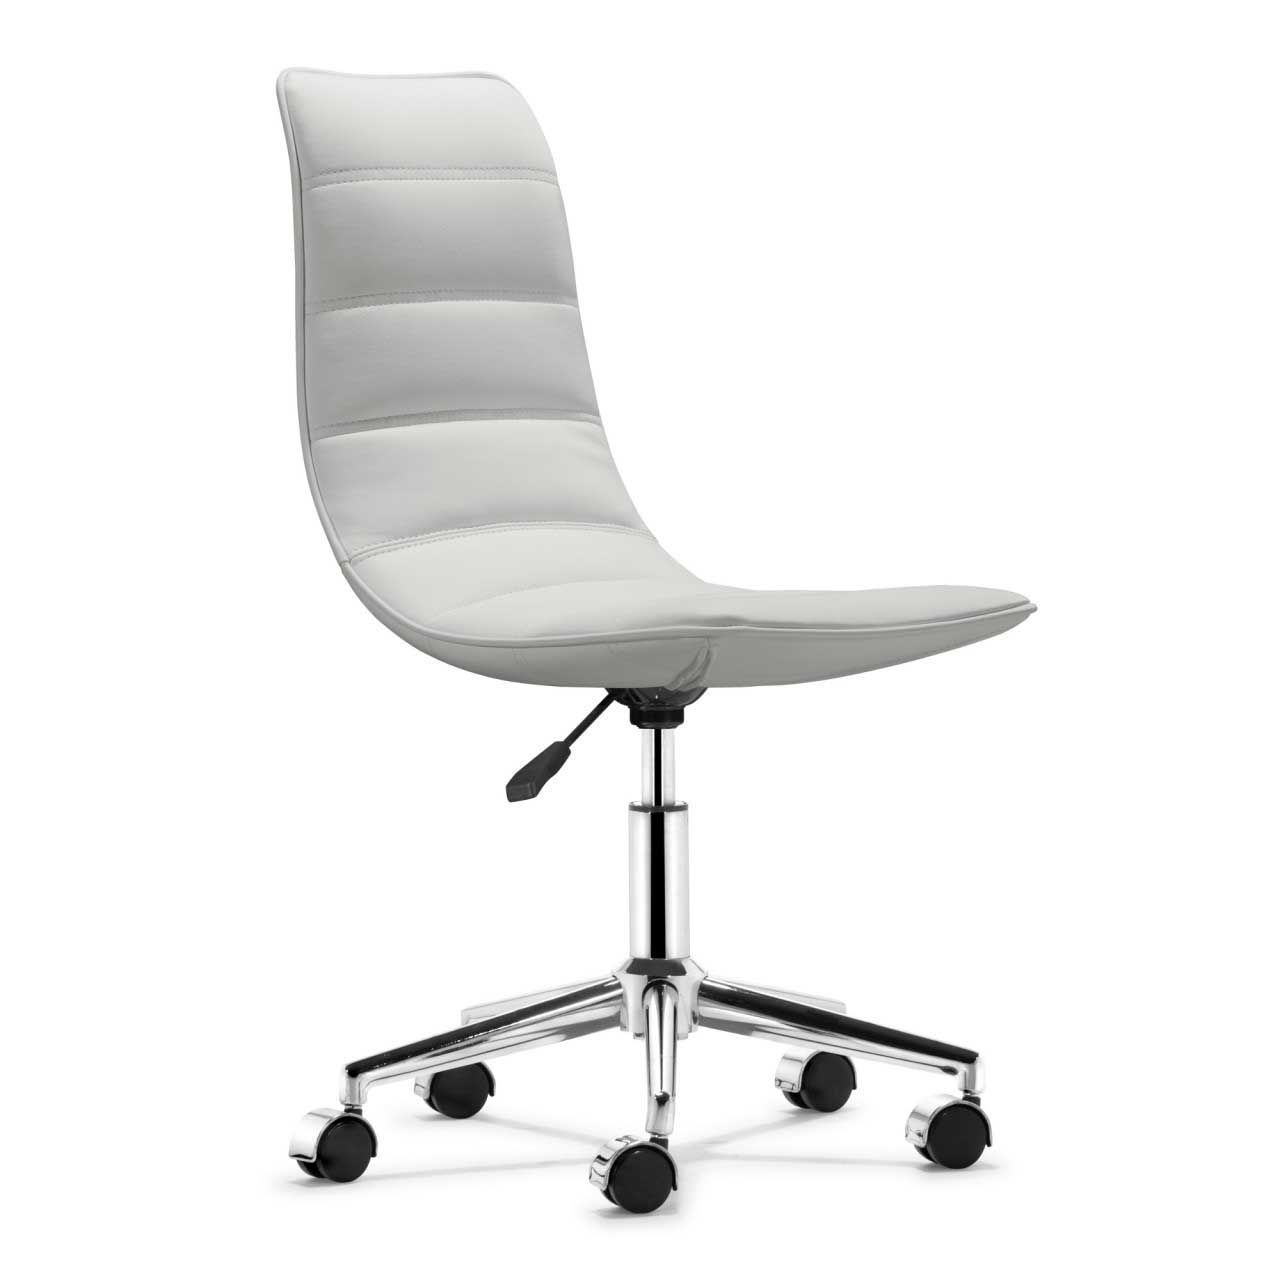 White Rolling Chair Nice Desk Chair White On Interior Decor Home Ideas With